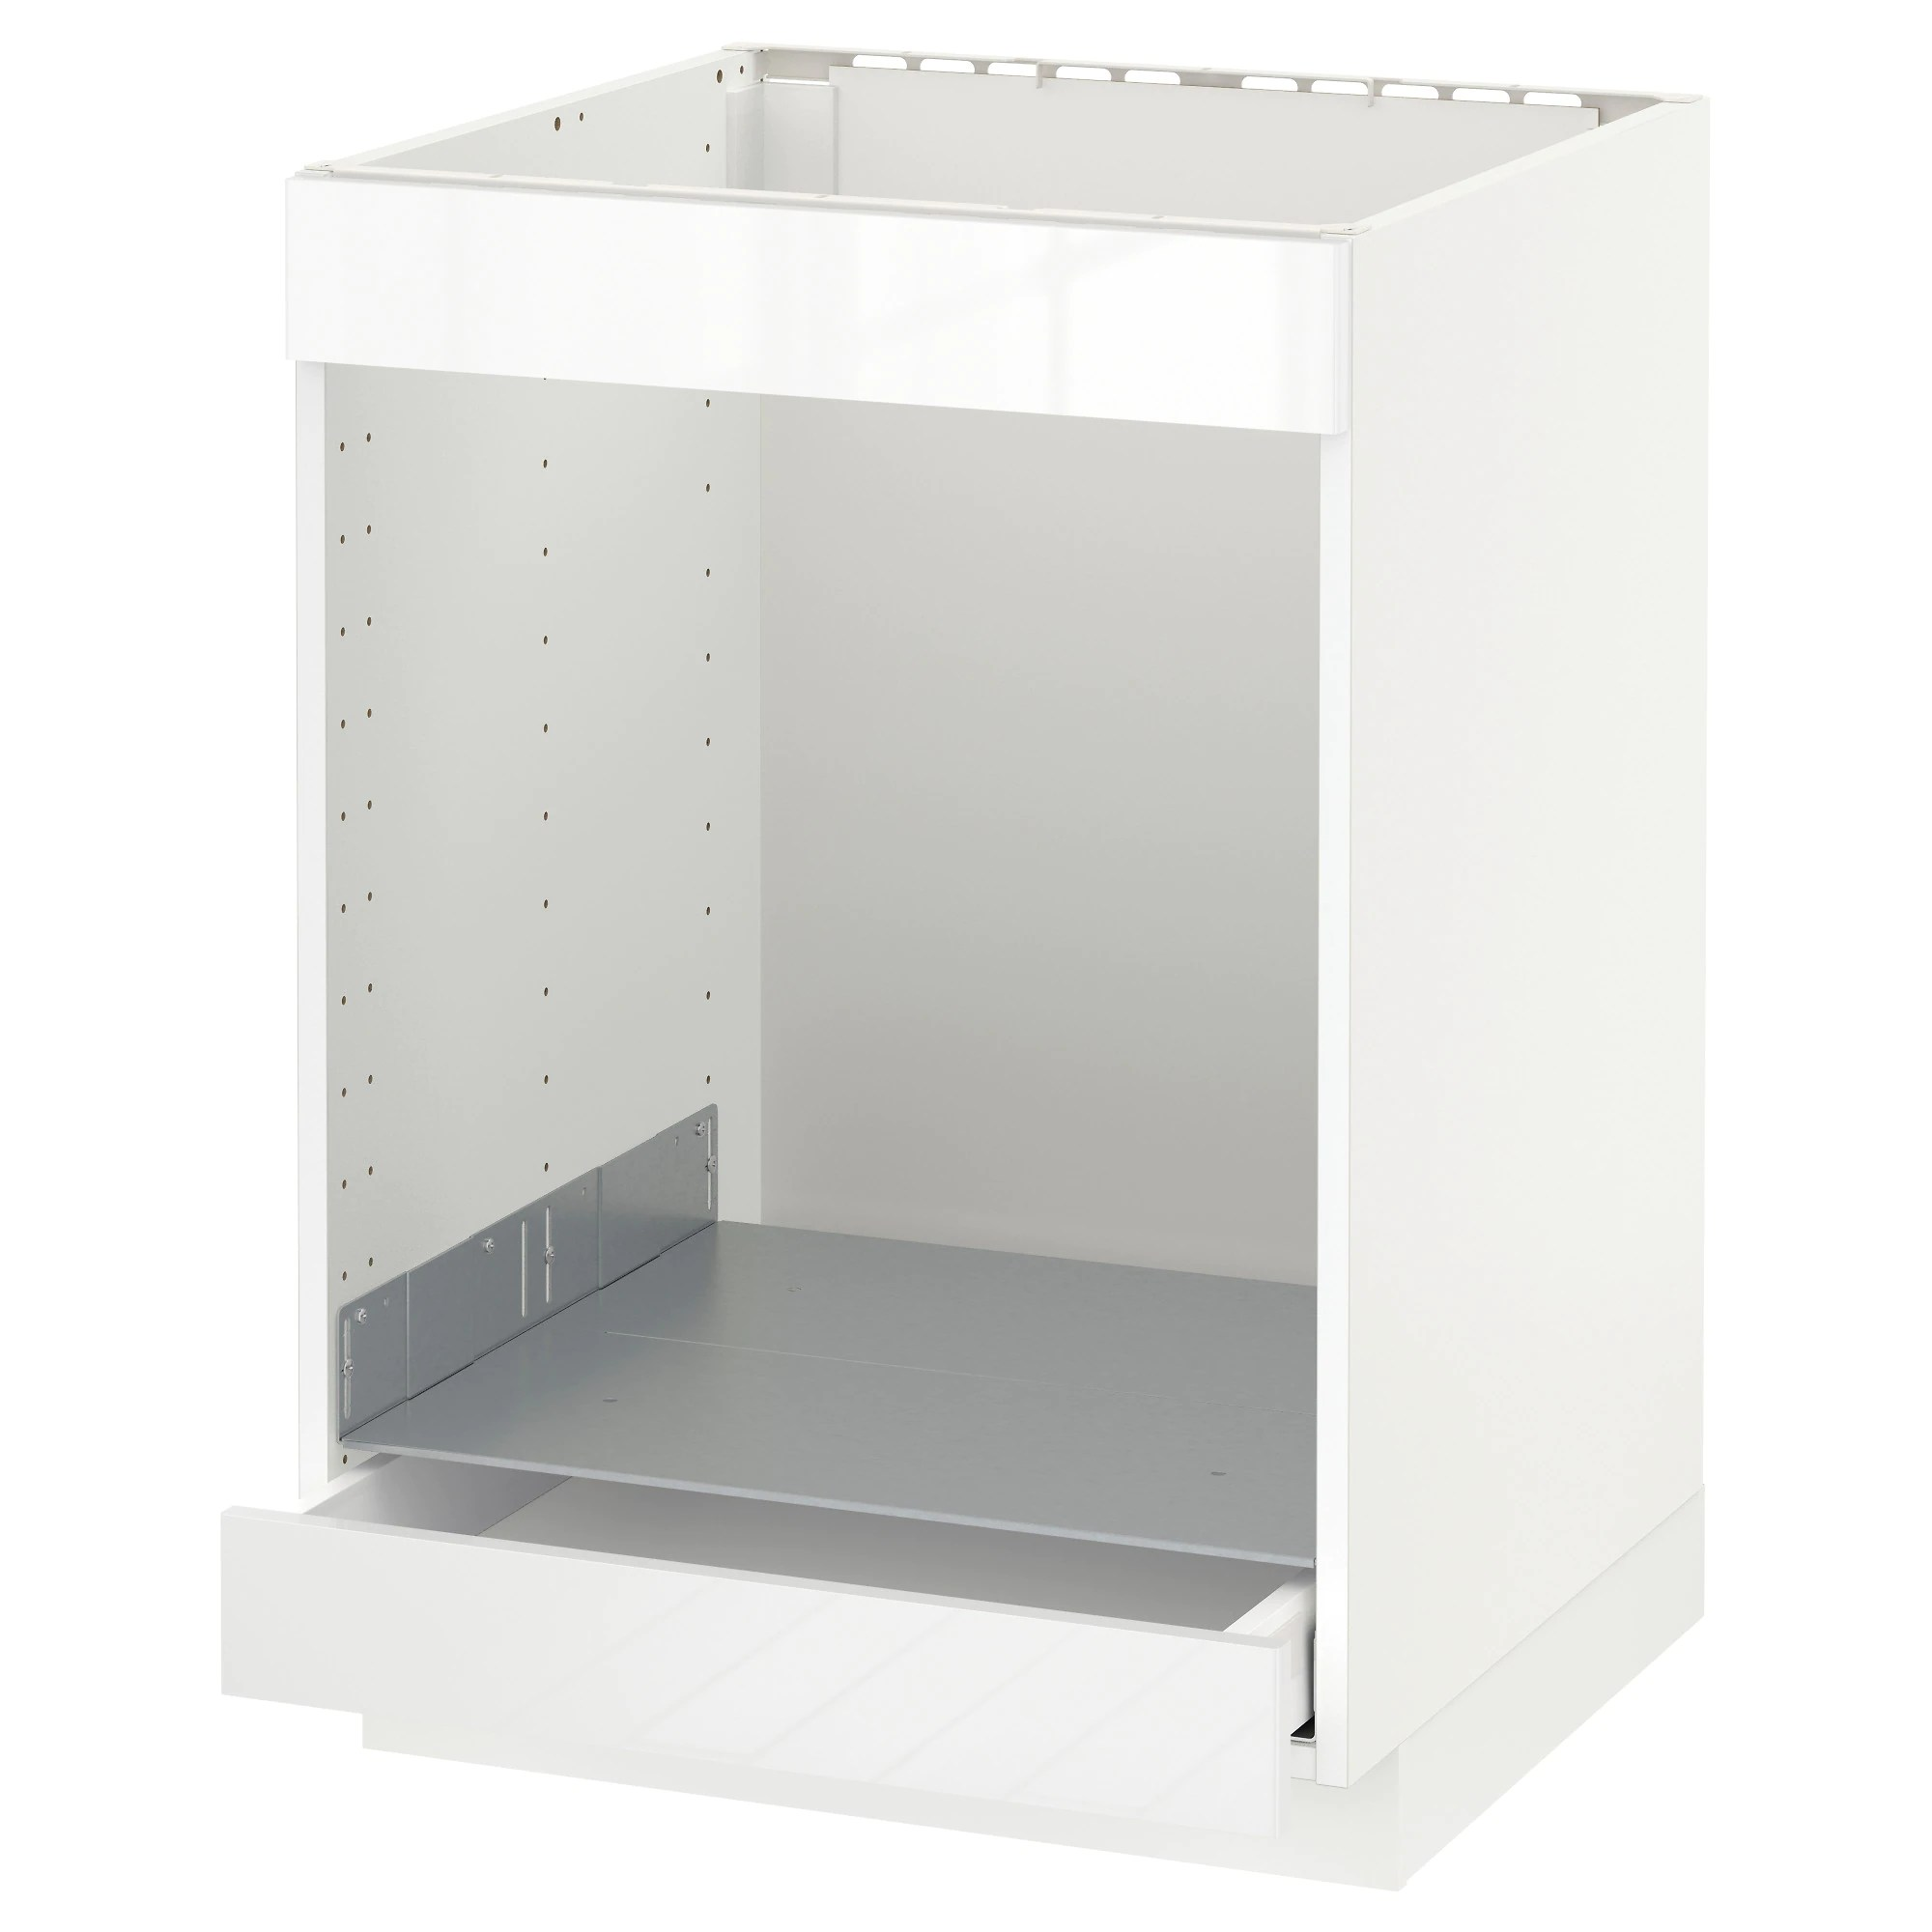 Meubles Cases Ikea Base Cab For Hob Oven W Drawer Metod Maximera White Ringhult White